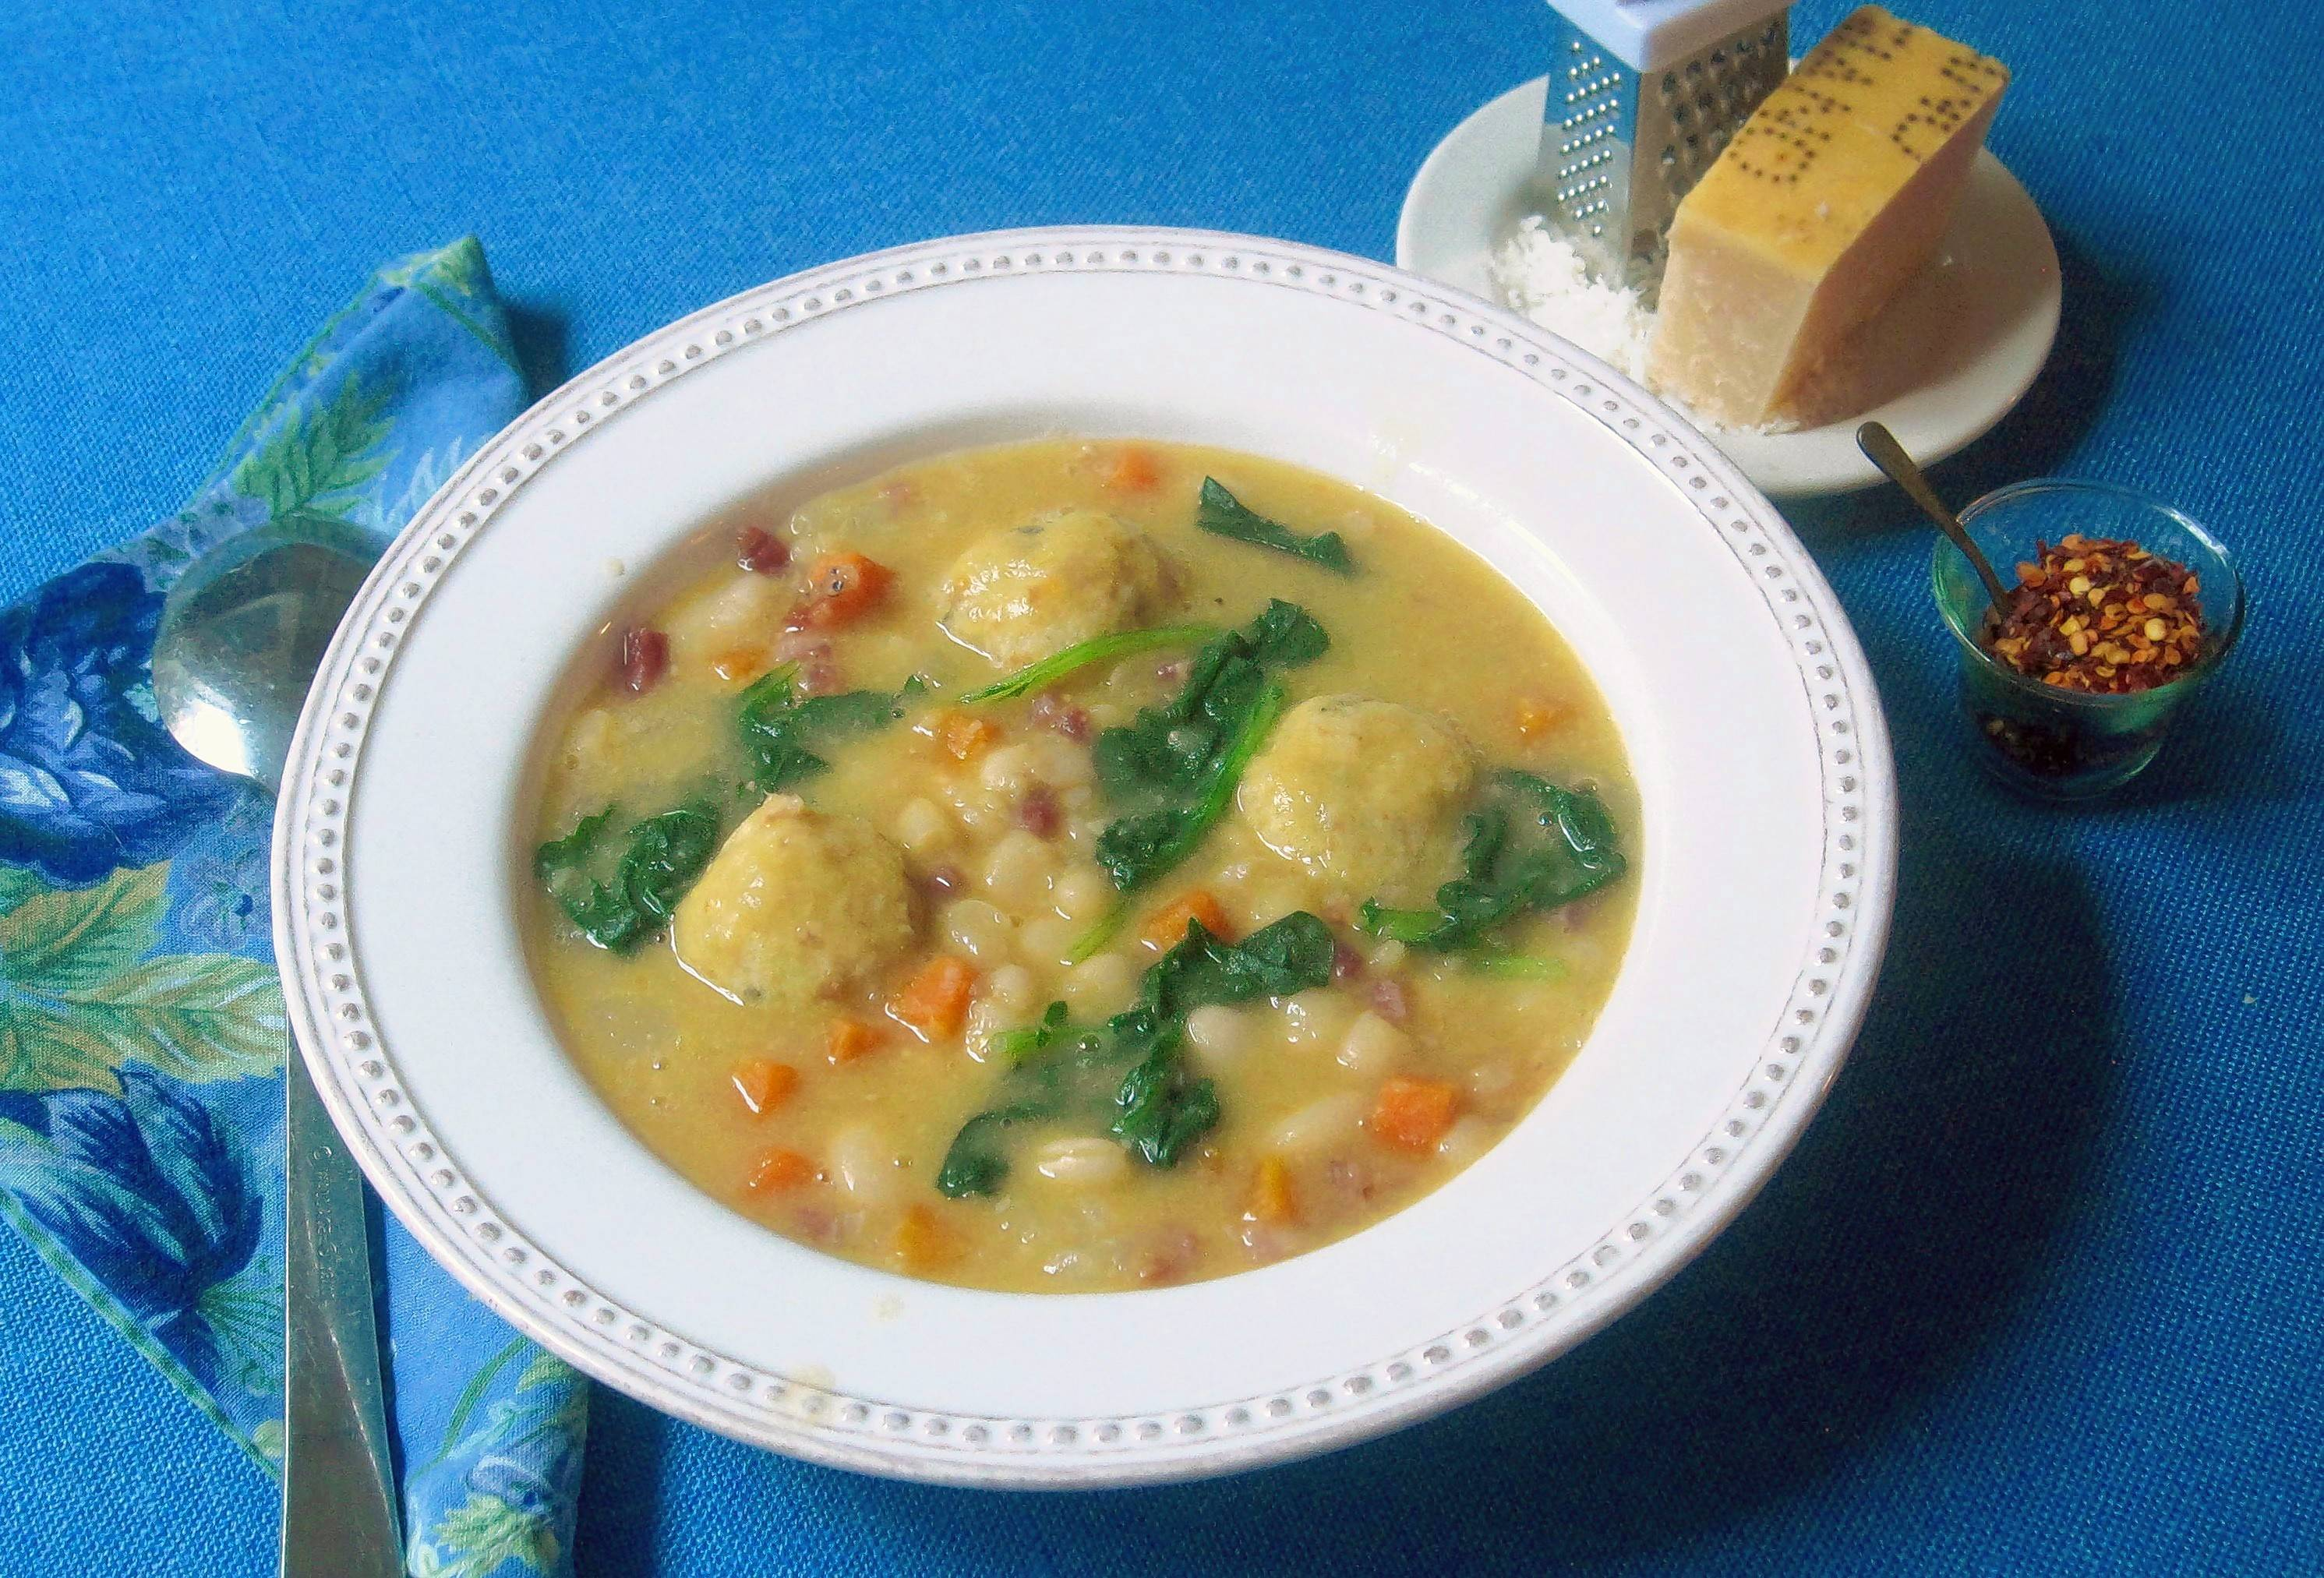 White bean soup with bread dumplings puts the warmth into winter.